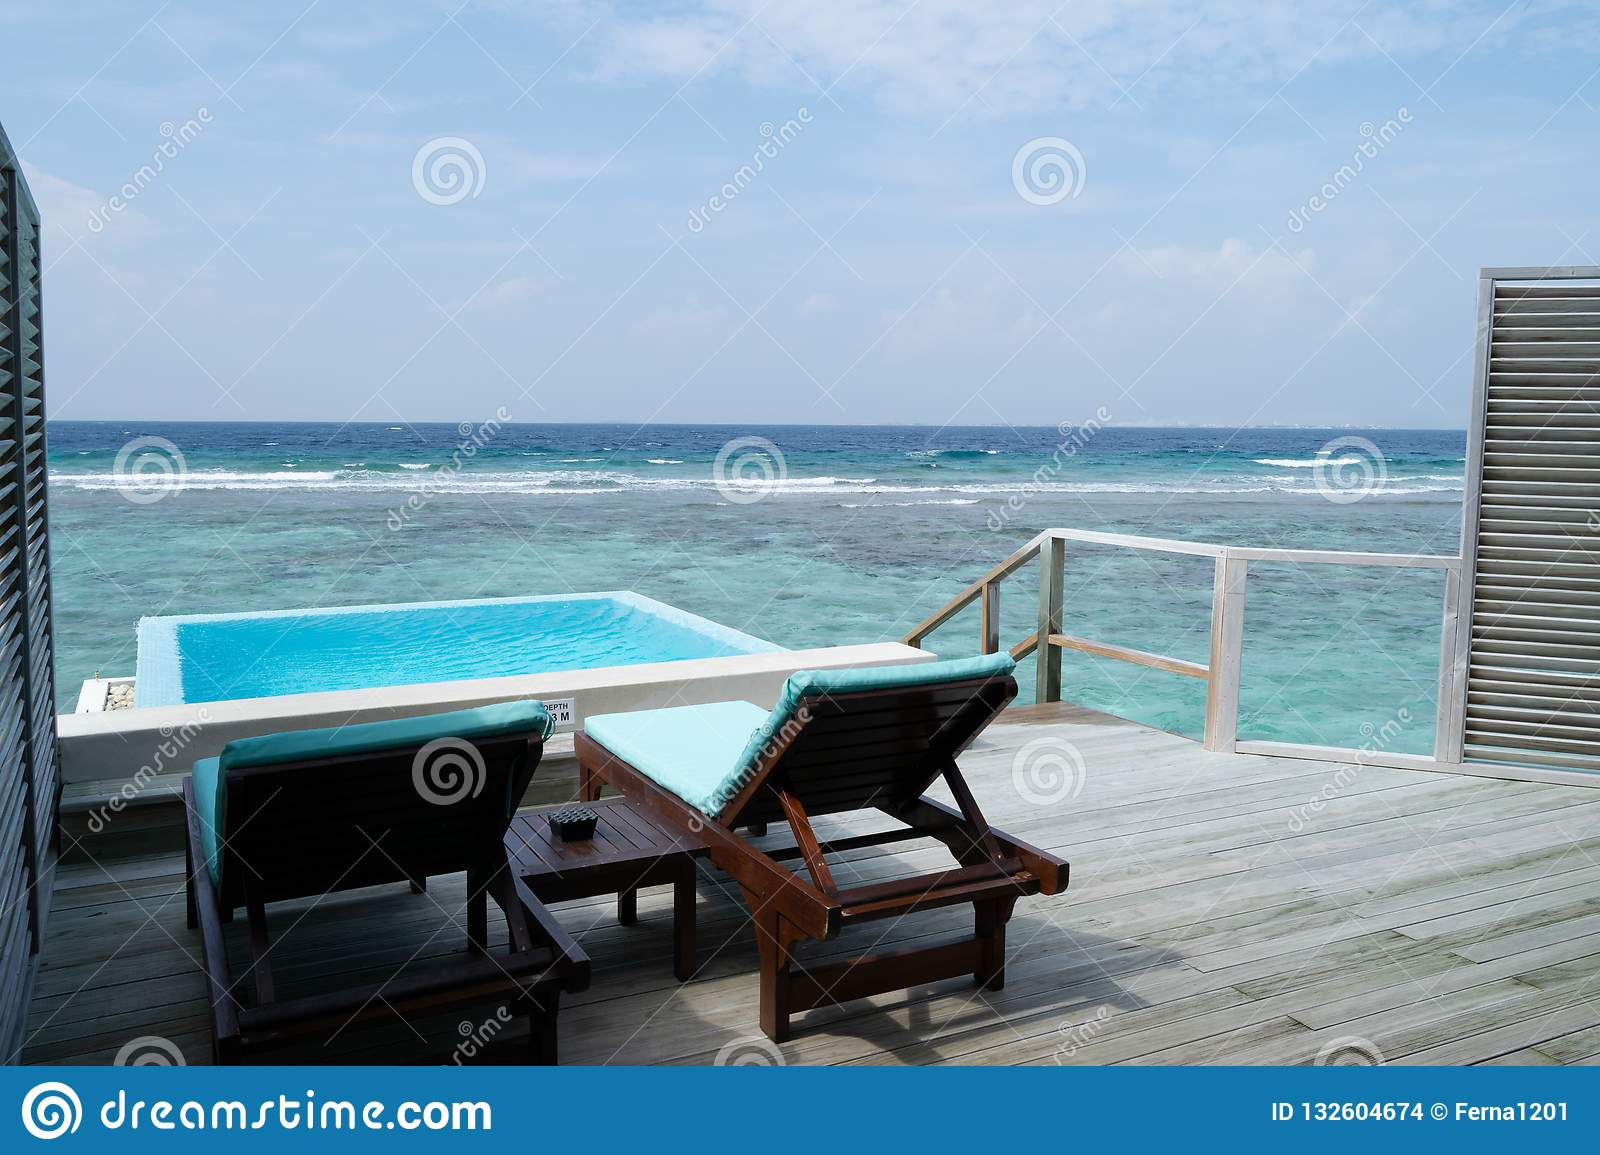 Two deckchair and a pool on the terrace on beautiful bungalow on